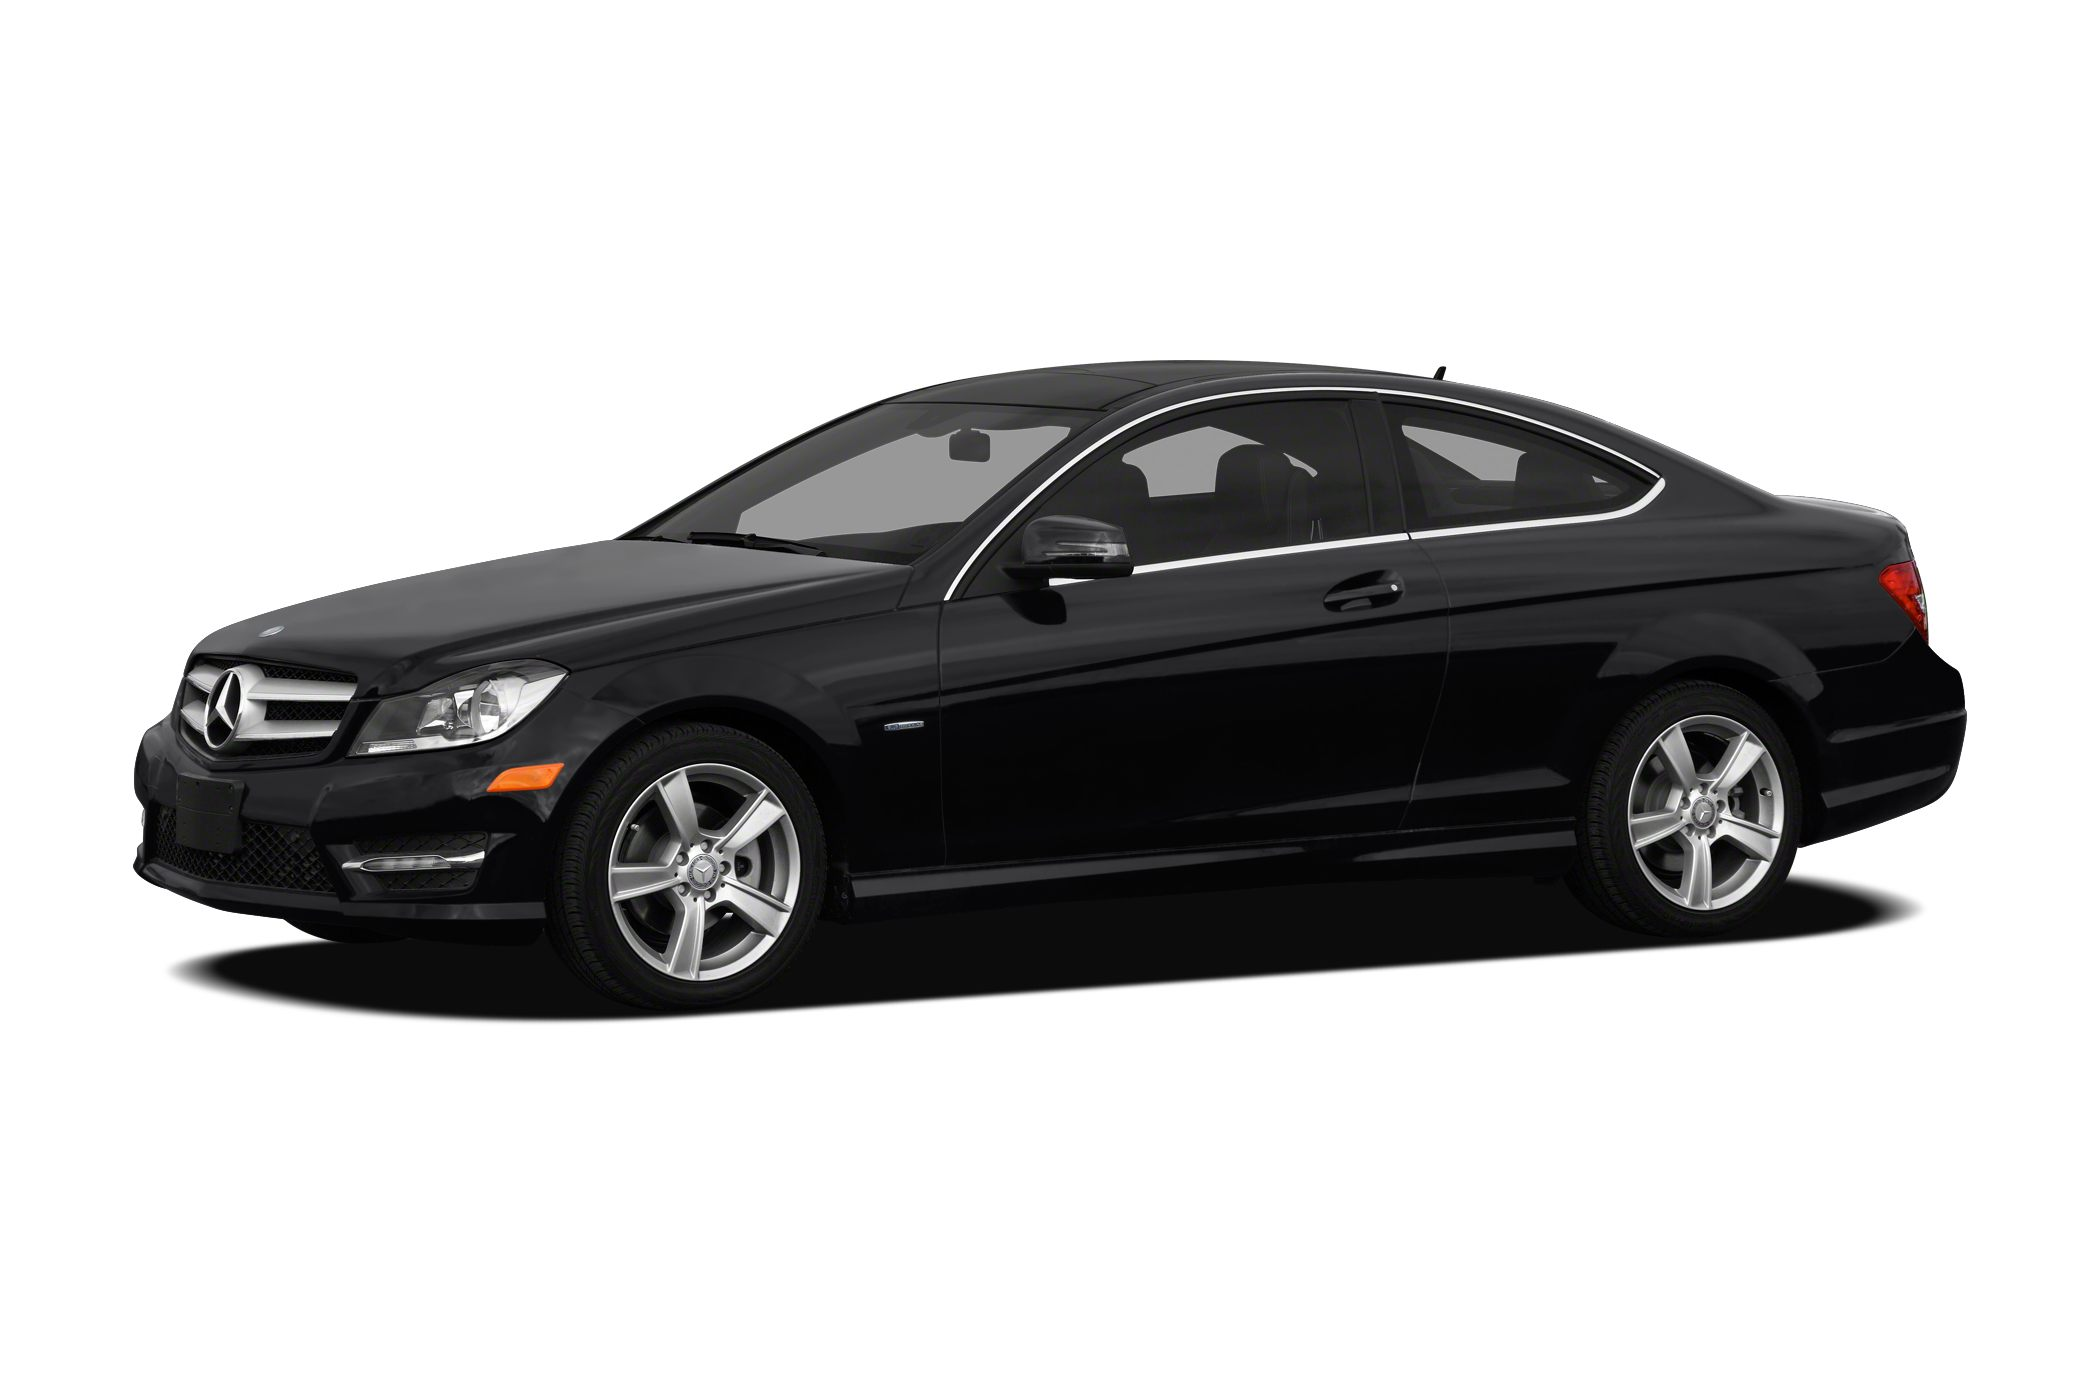 2012 Mercedes-Benz C-Class C250 Sedan for sale in Tulsa for $26,000 with 32,099 miles